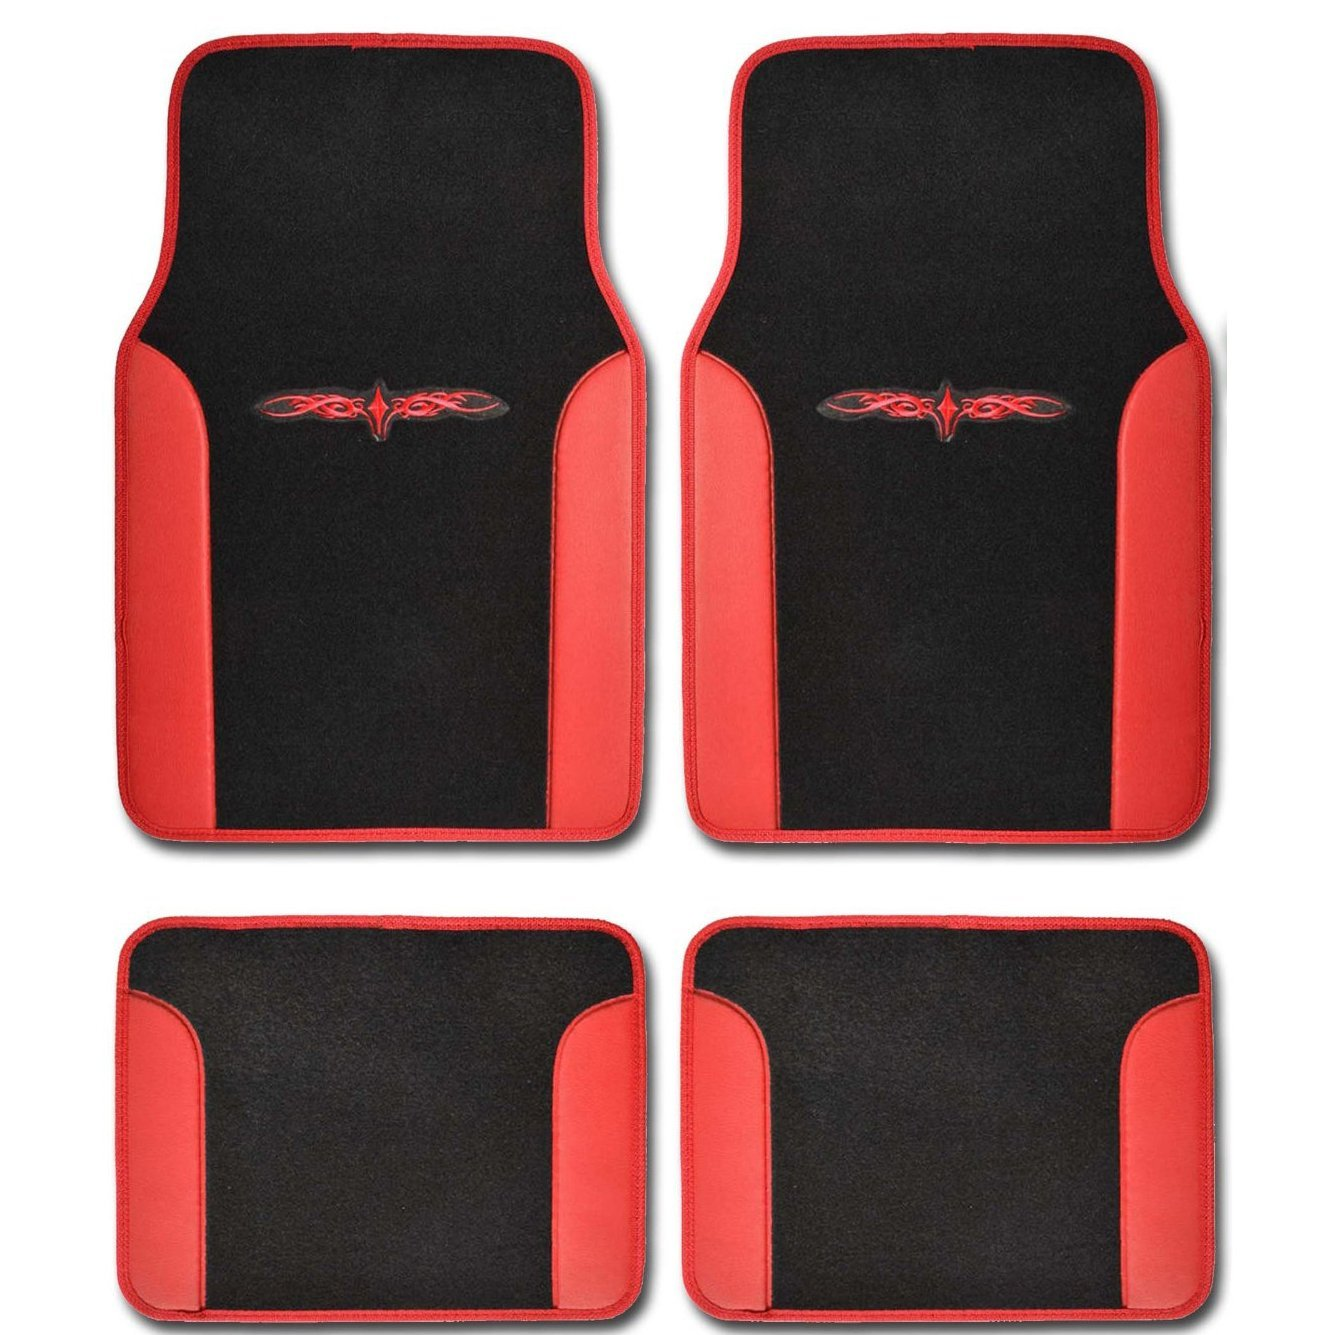 A Set of 4 Universal Fit Plush Carpet wi Trim Floor Mats For Cars   Trucks (Red) by LavoHome